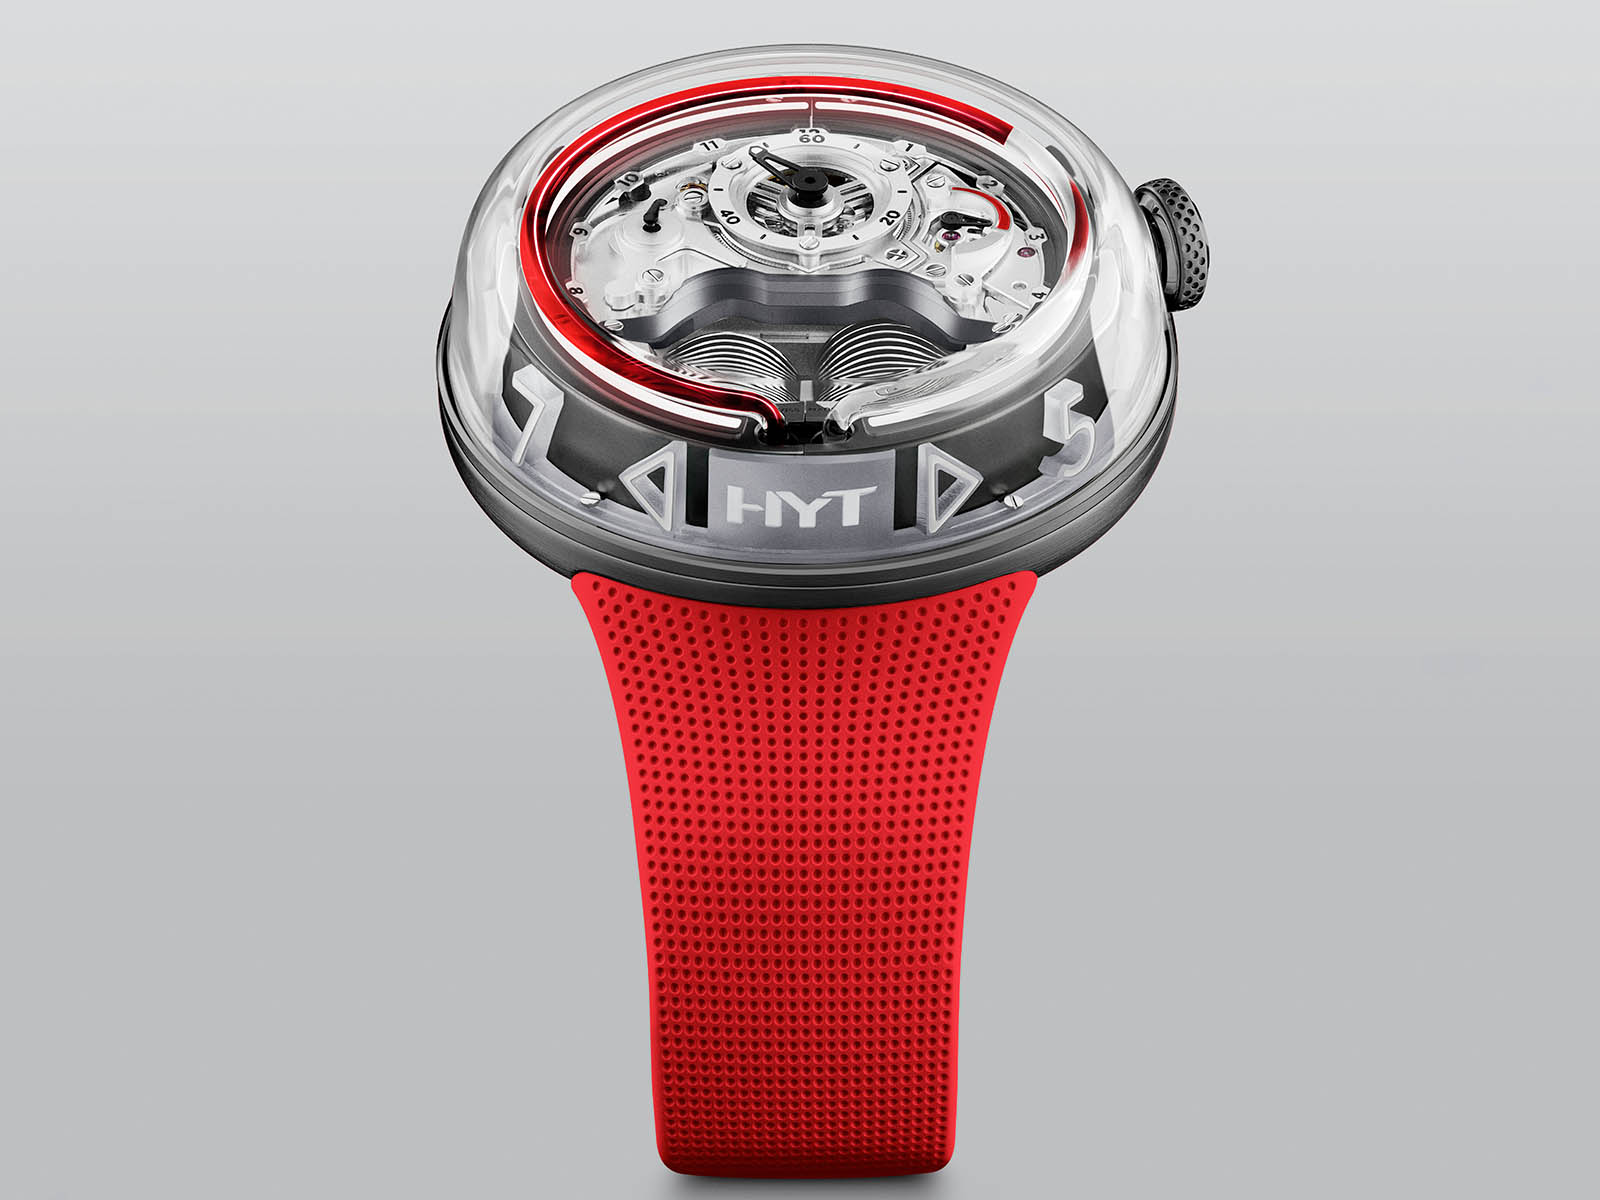 h02248-hyt-h5-red-limited-edition-8.jpg